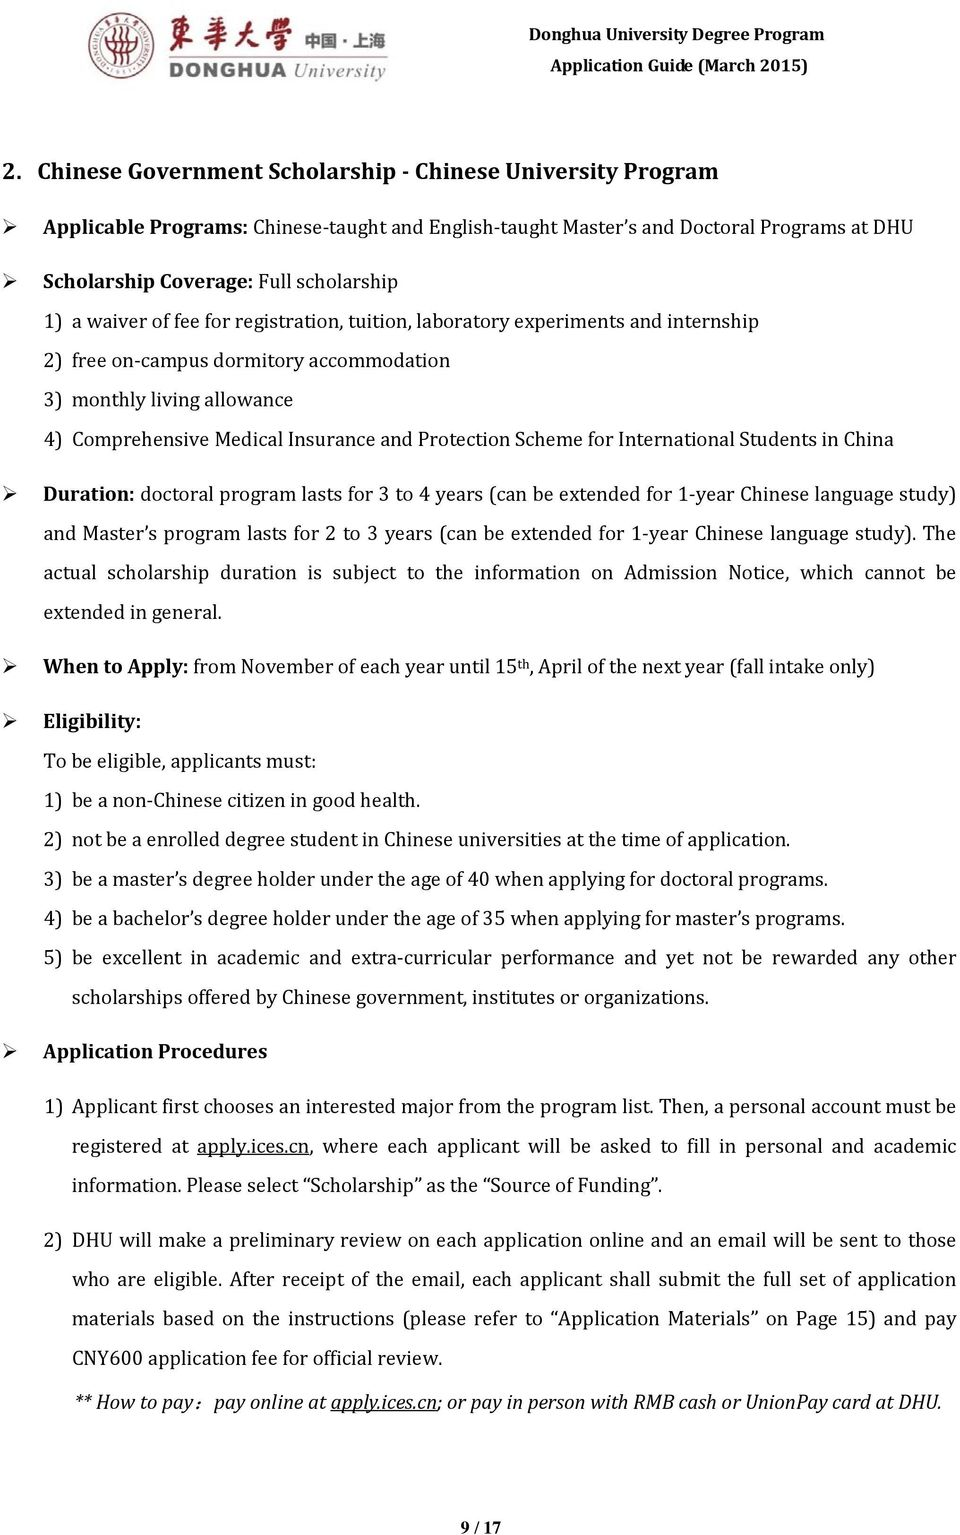 Scheme for International Students in China Duration: doctoral program lasts for 3 to 4 years (can be extended for 1-year Chinese language study) and Master s program lasts for 2 to 3 years (can be